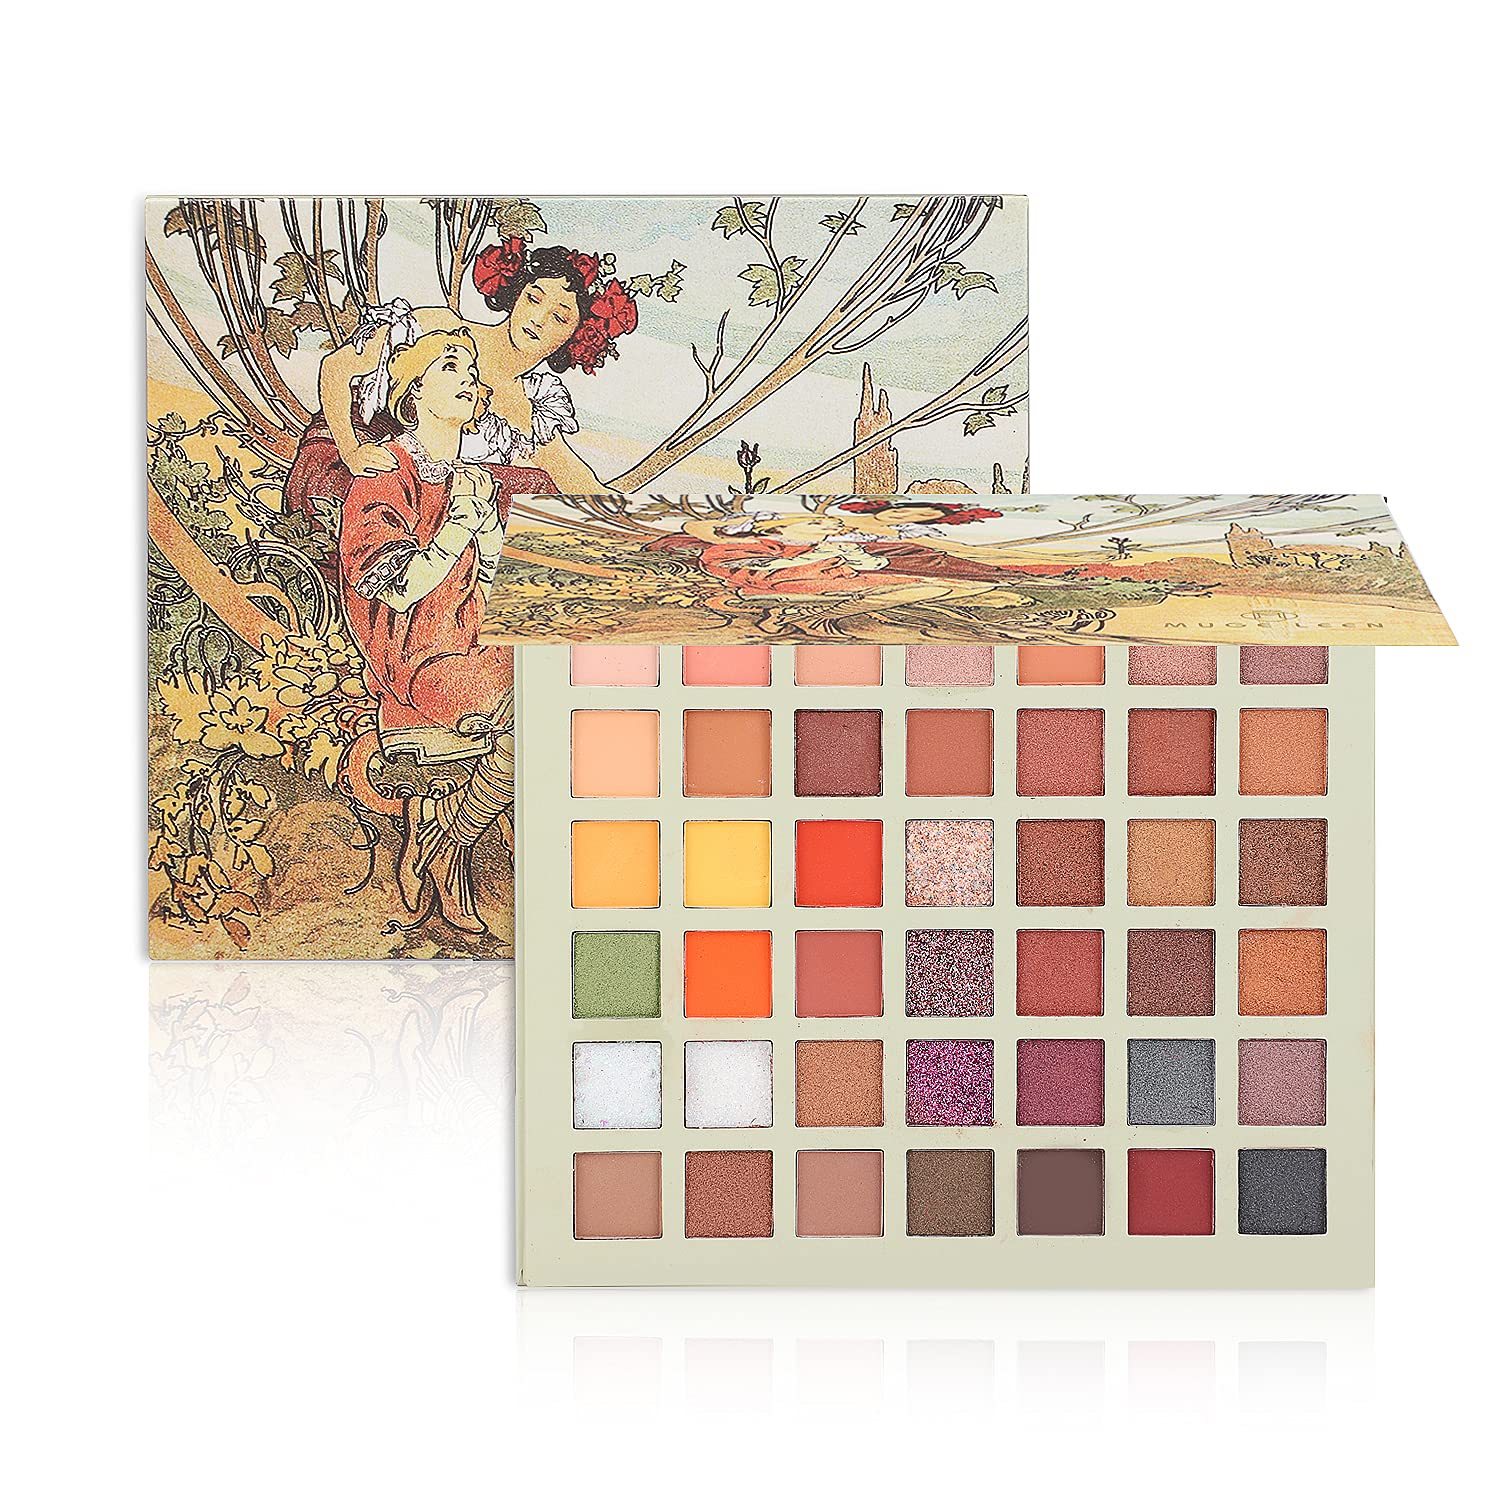 Highly Los Angeles Mall Pigmented Eyeshadow Palette 42 Colors Sh Makeup Eye Matte Limited time for free shipping